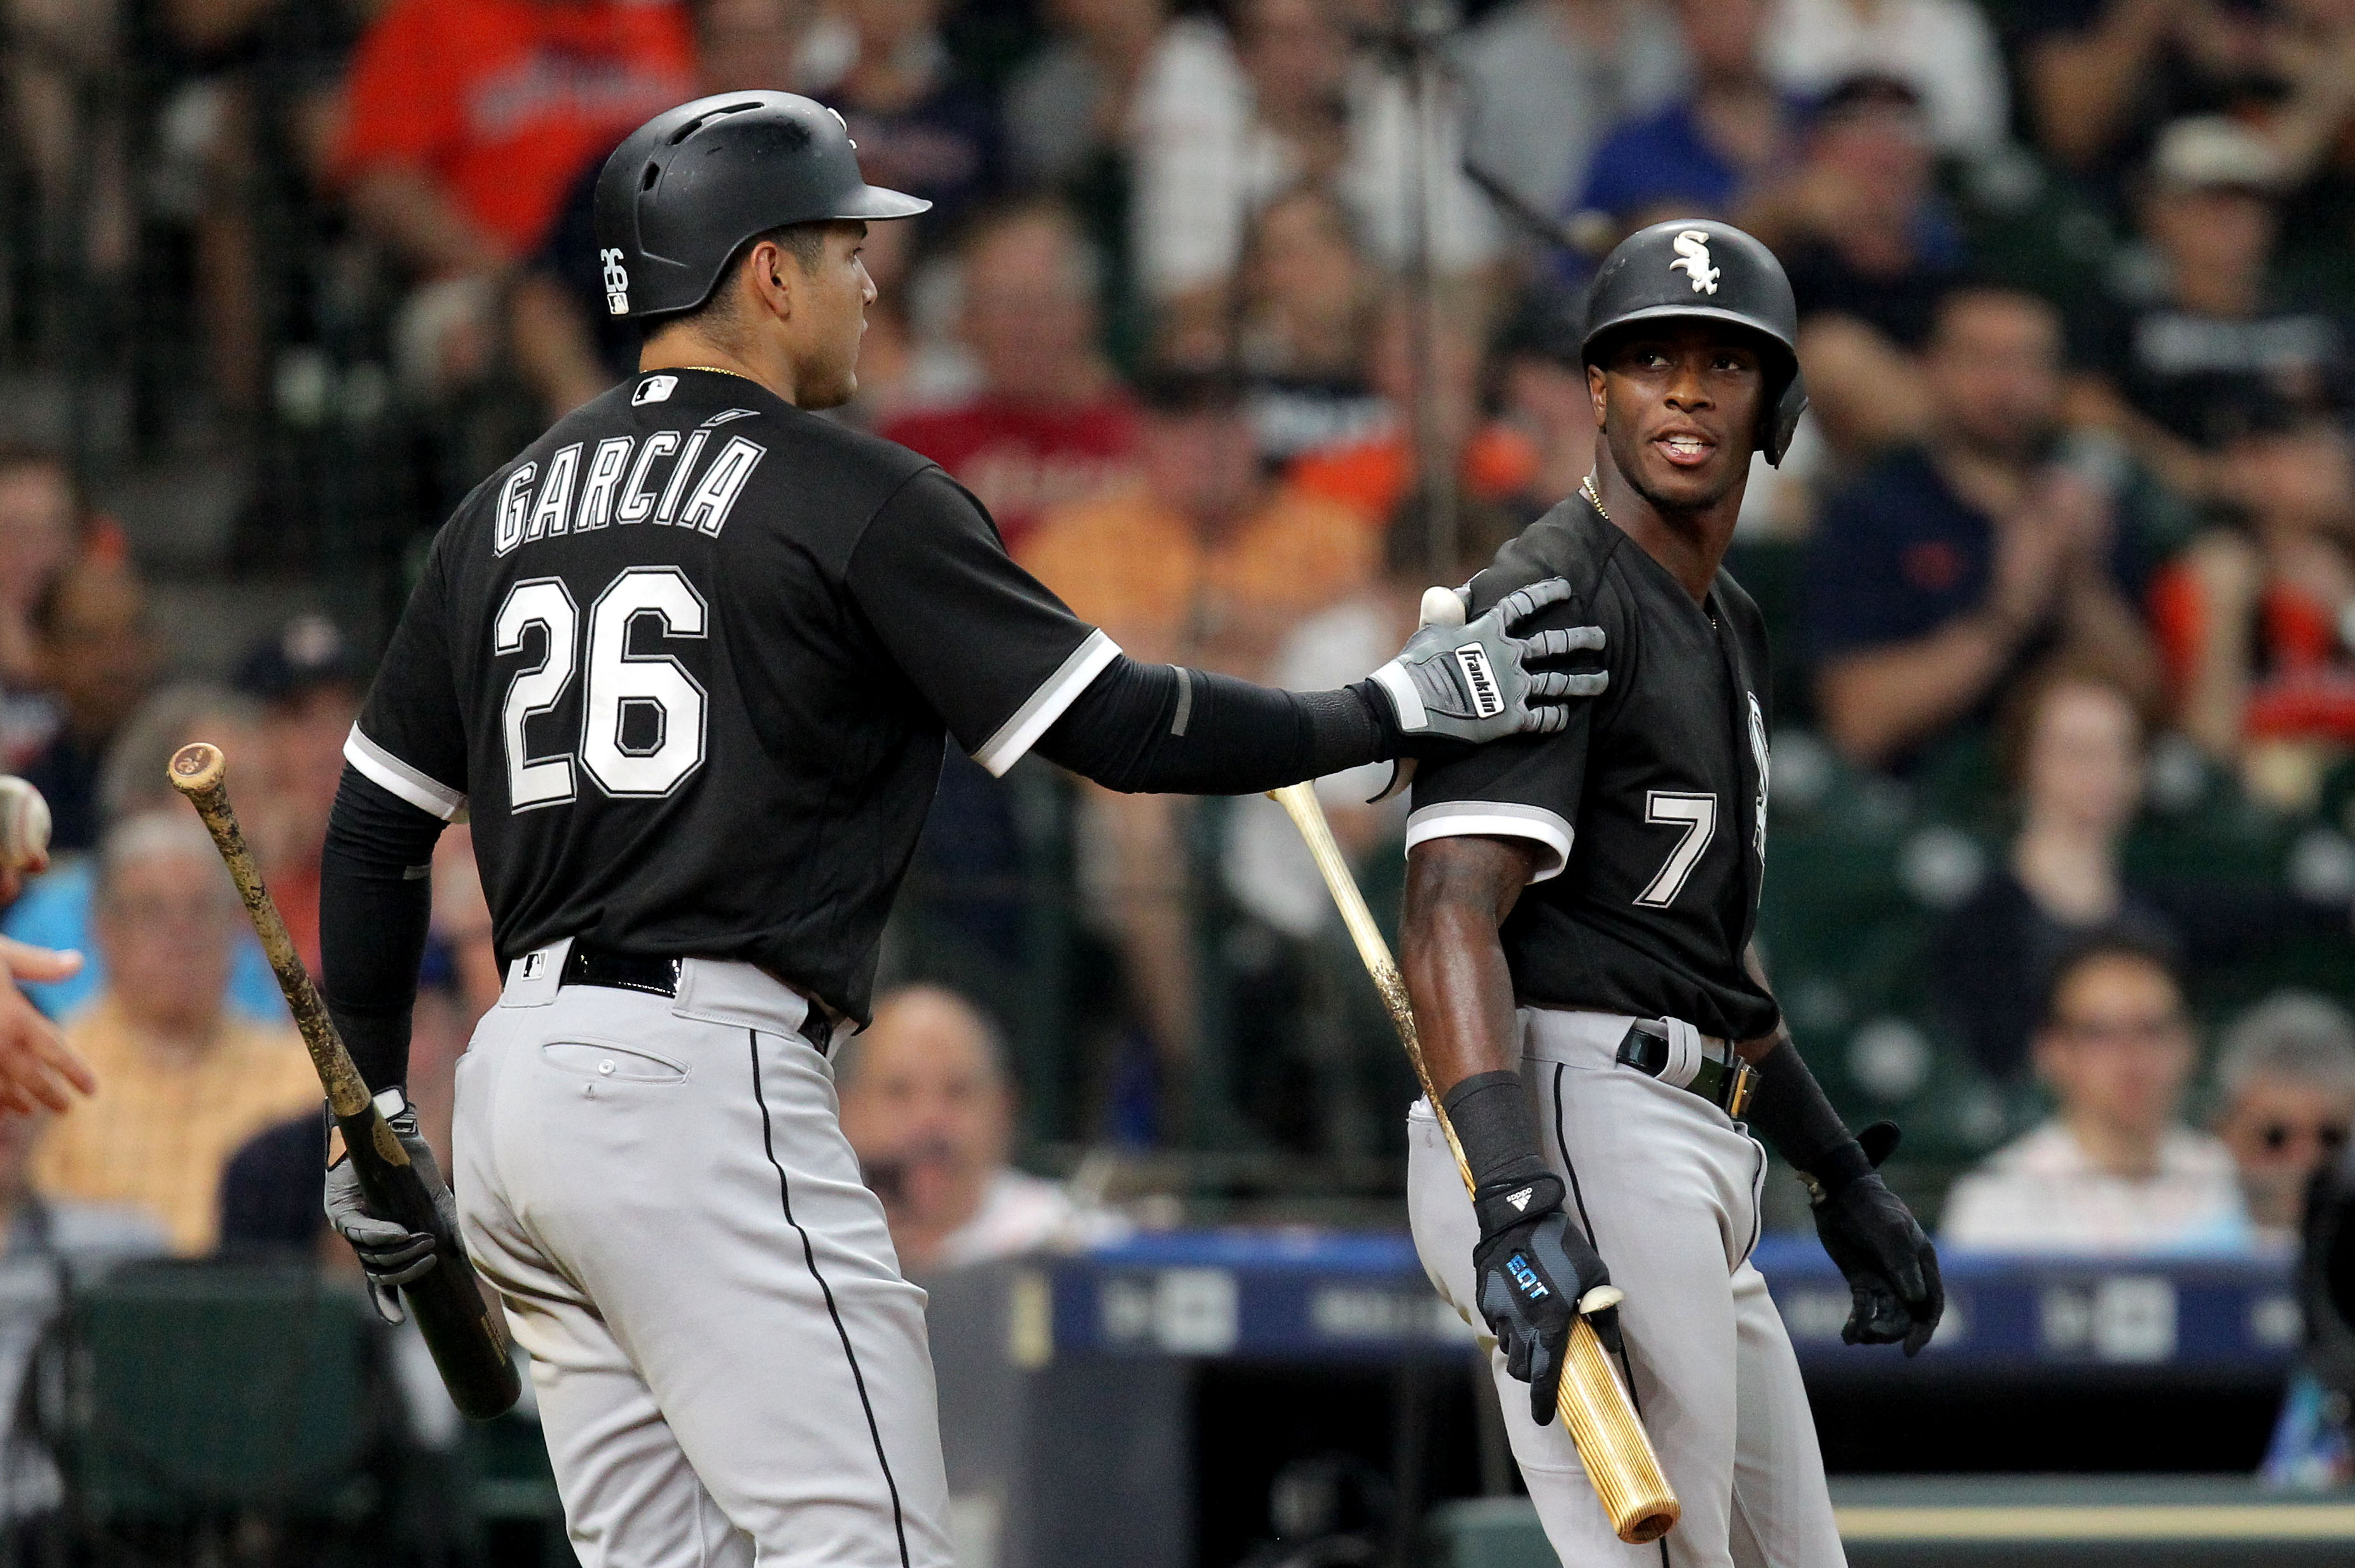 MLB: Chicago White Sox at Houston Astros